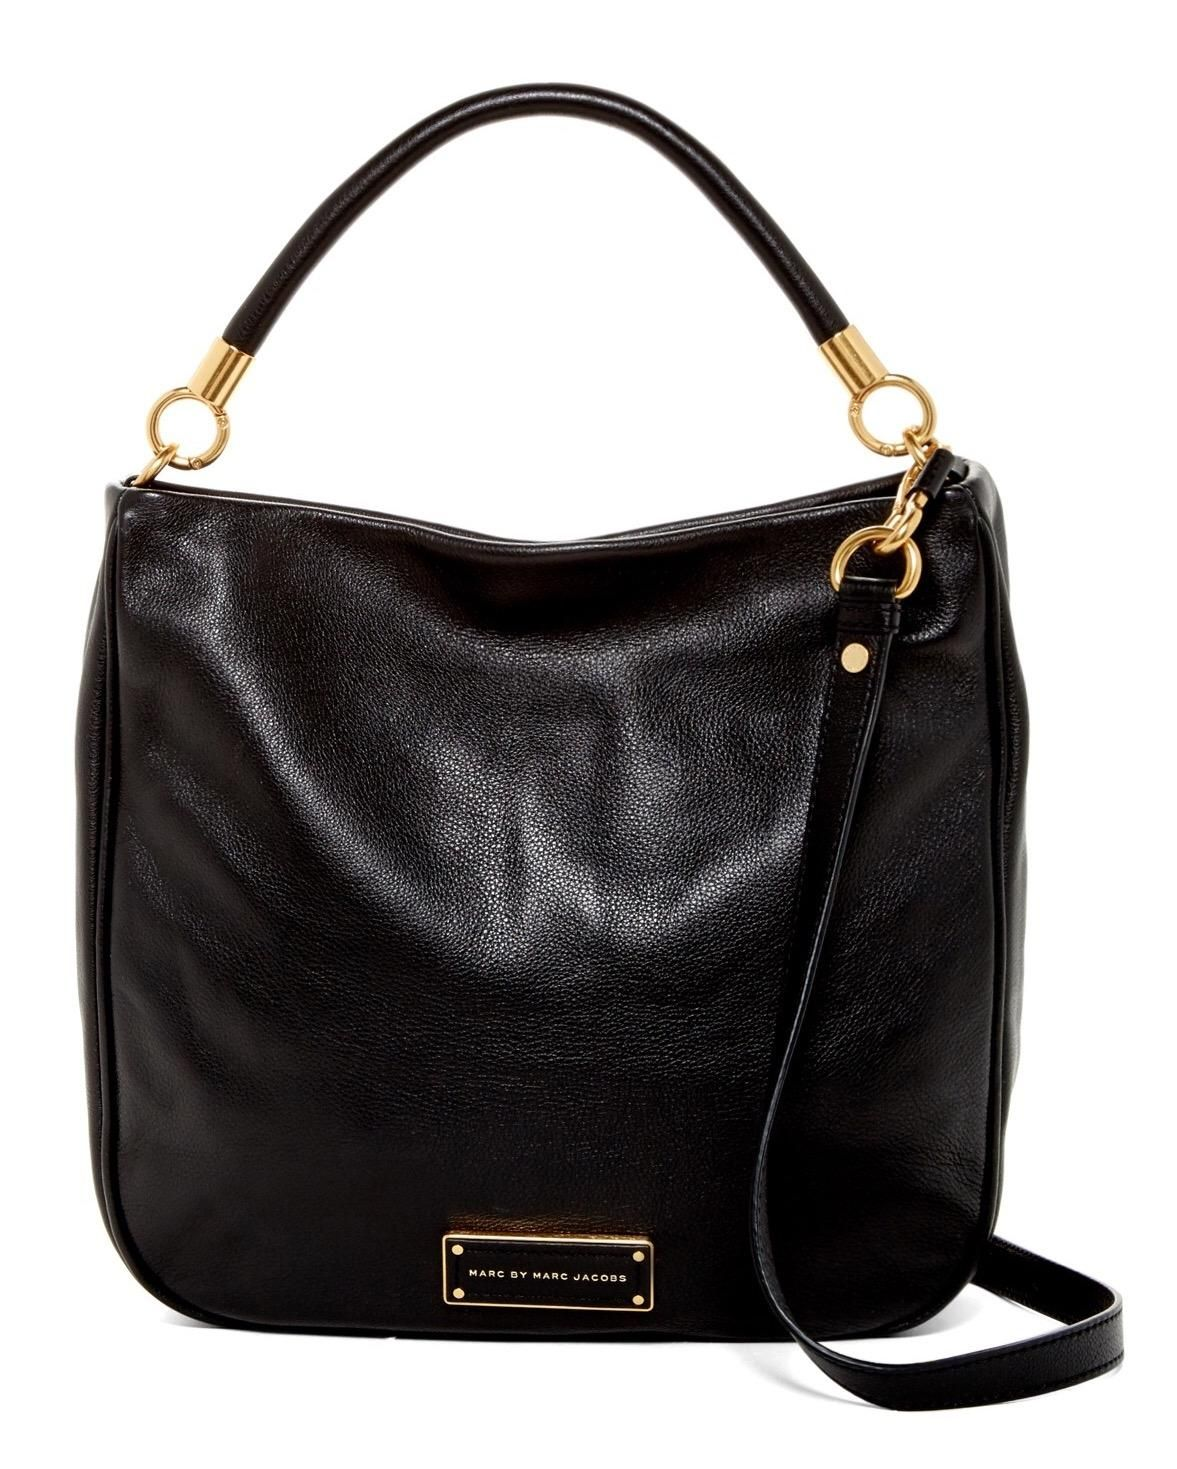 50aafaf1c309 Marc By Marc Jacobs New Mbmj  too Handle  Leather M3pe132 Hobo Bag. Hobo  bags are hot this season! The Marc By Marc Jacobs New Mbmj  too Handle   Leather ...